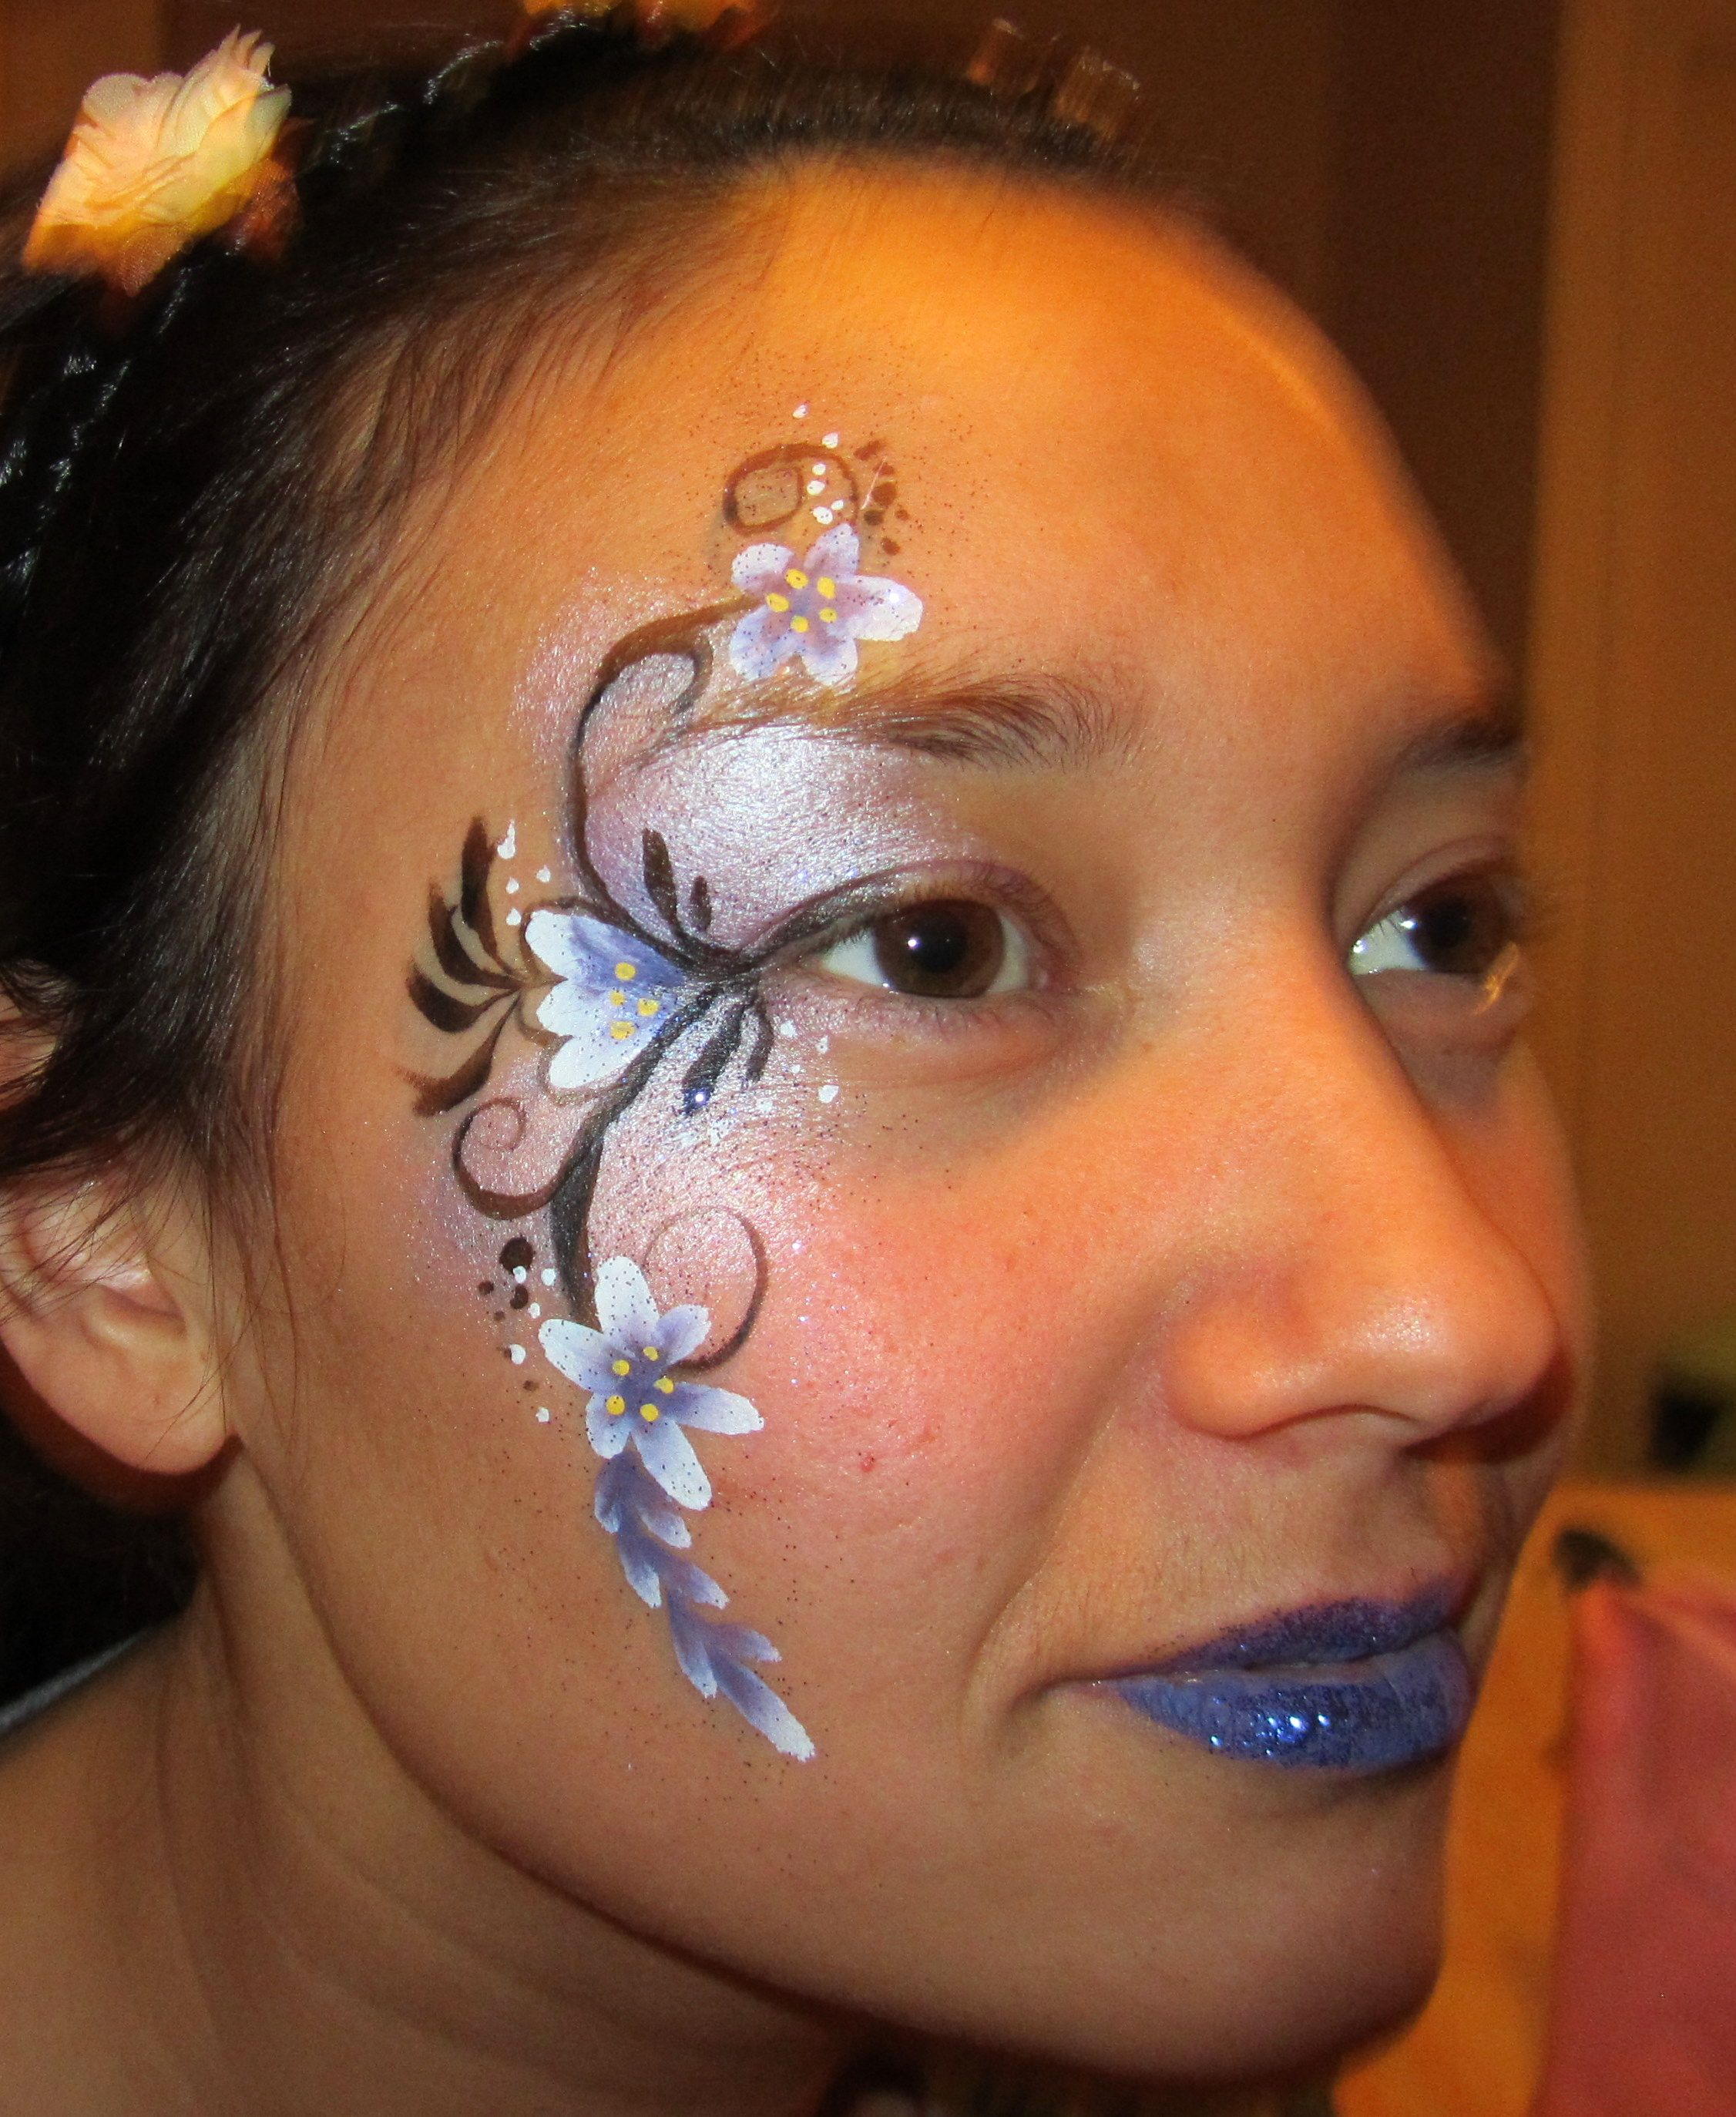 adult-face-painting-designs-lovette-galleries-stripper